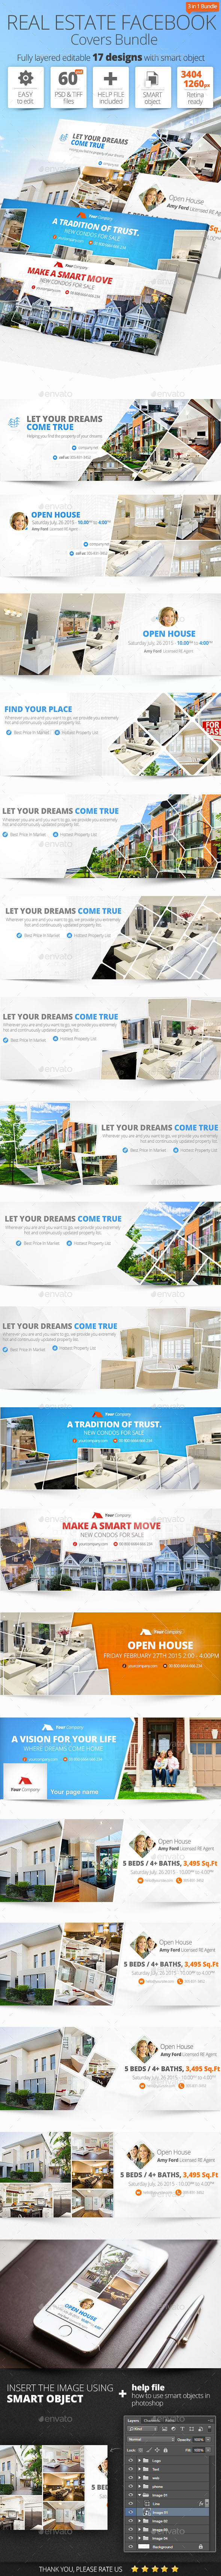 Real Estate Facebook Cover Bundle 17 Designs - Facebook Timeline Covers Social Media